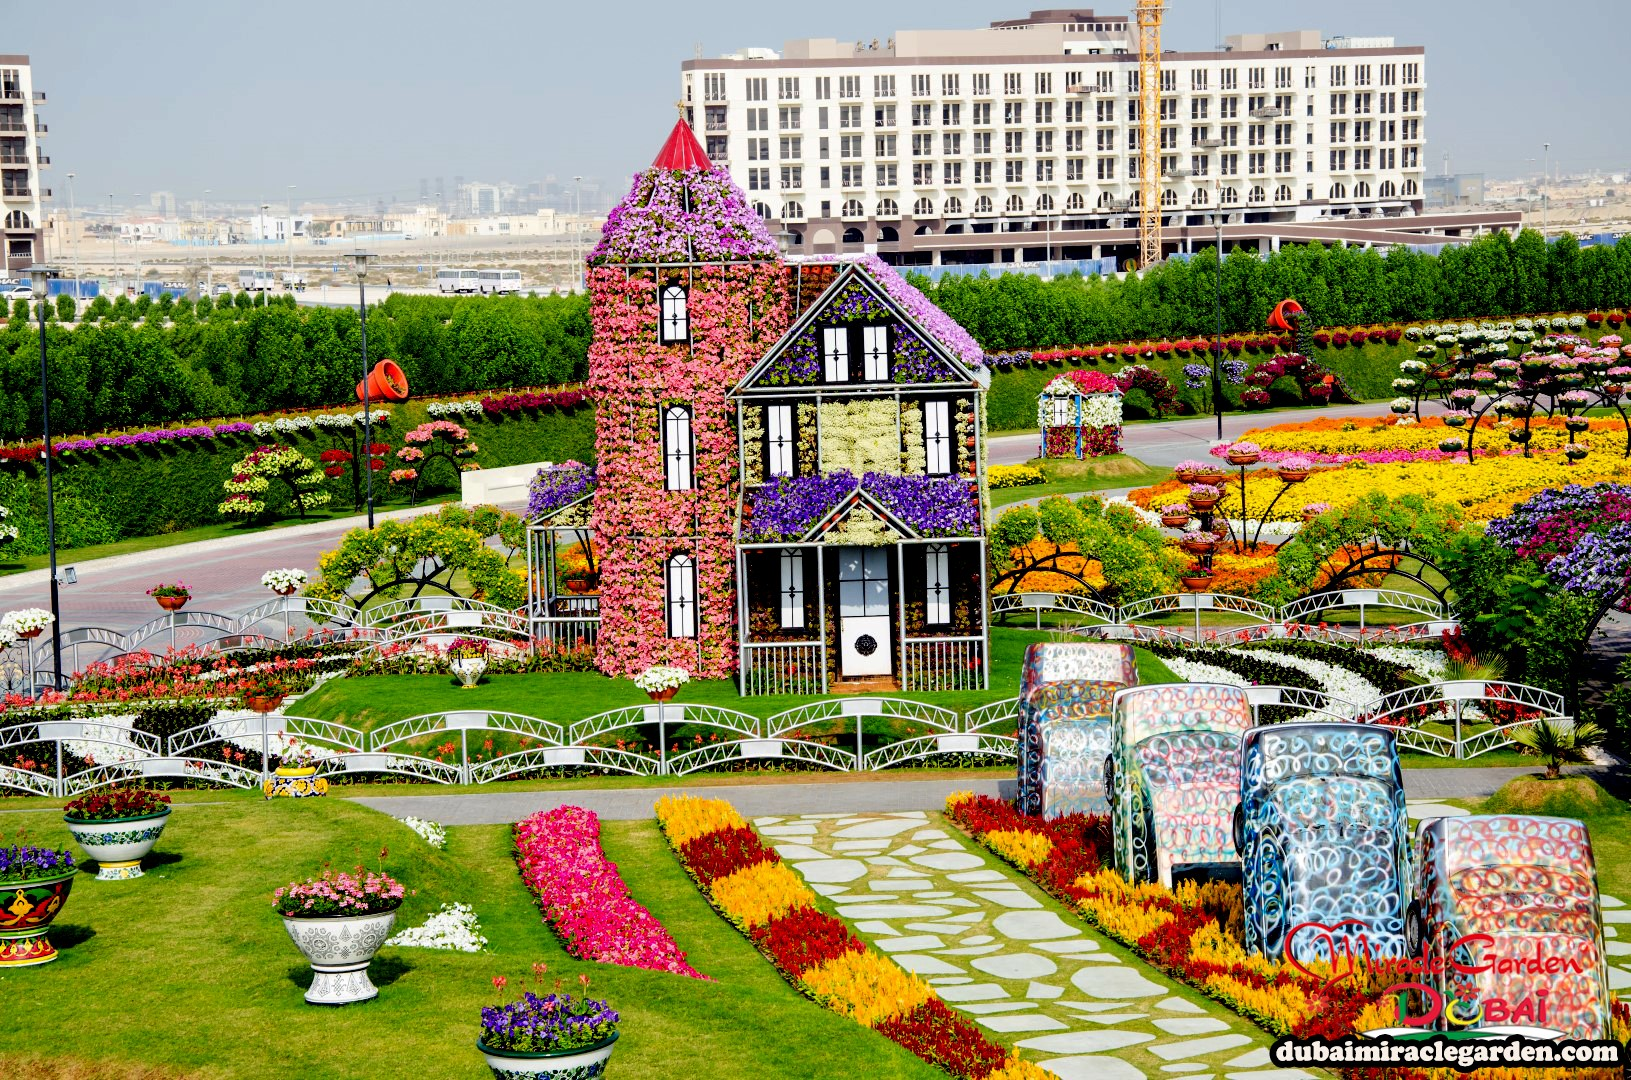 Dubai Parks And Gardens